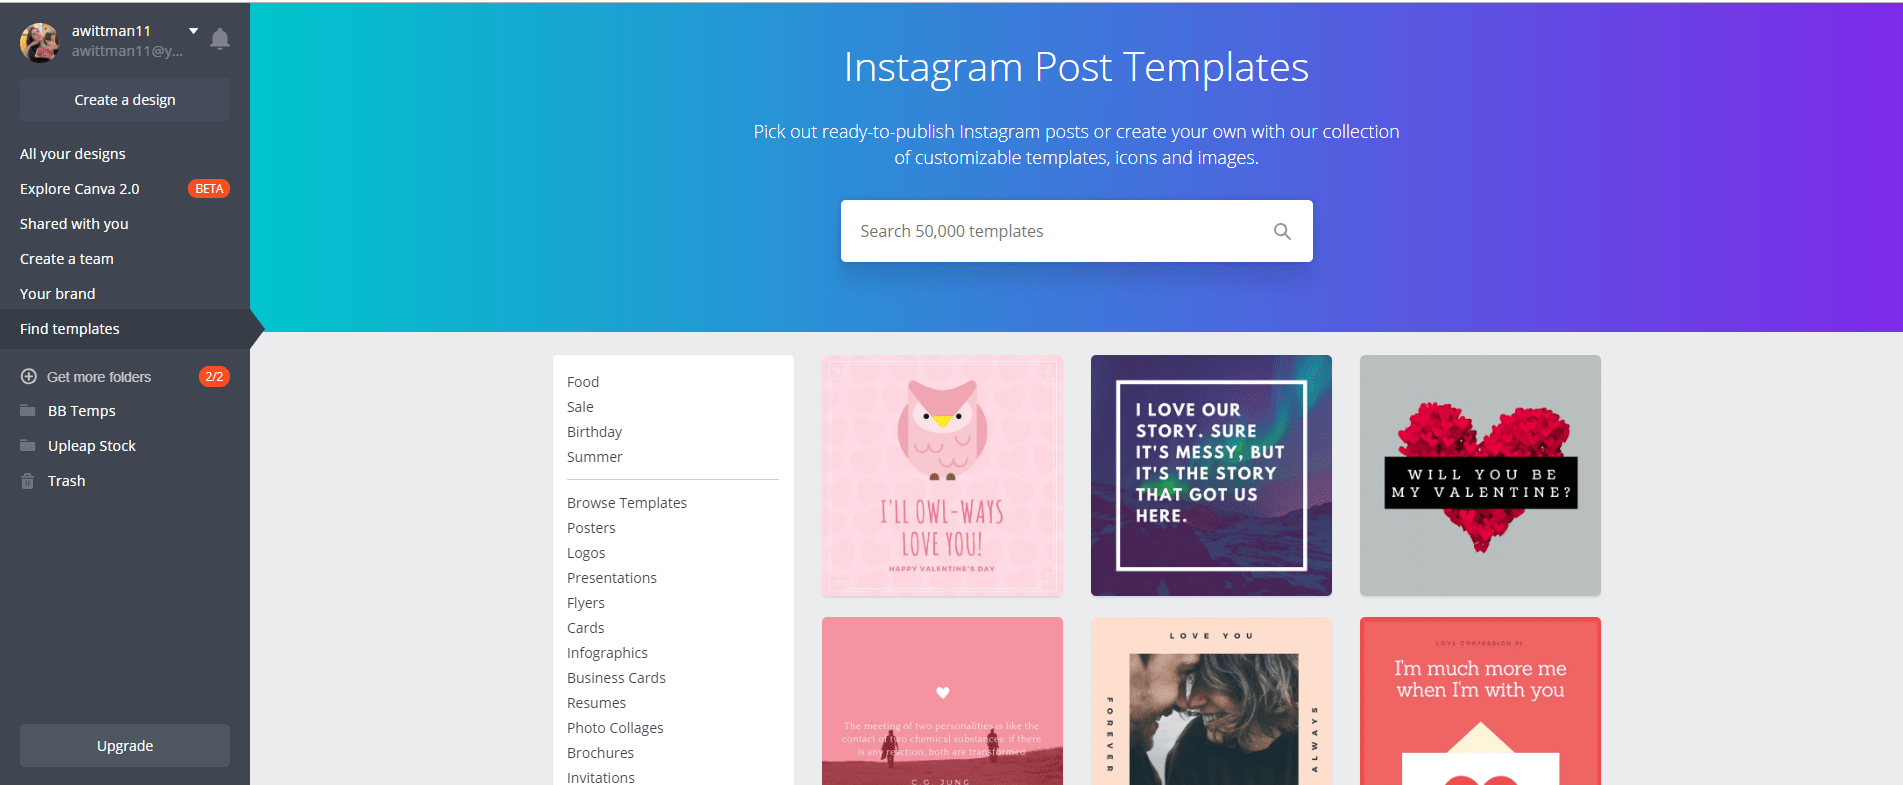 Make an amazing Instagram post template using one of our favorite Instagram template apps: Canva!